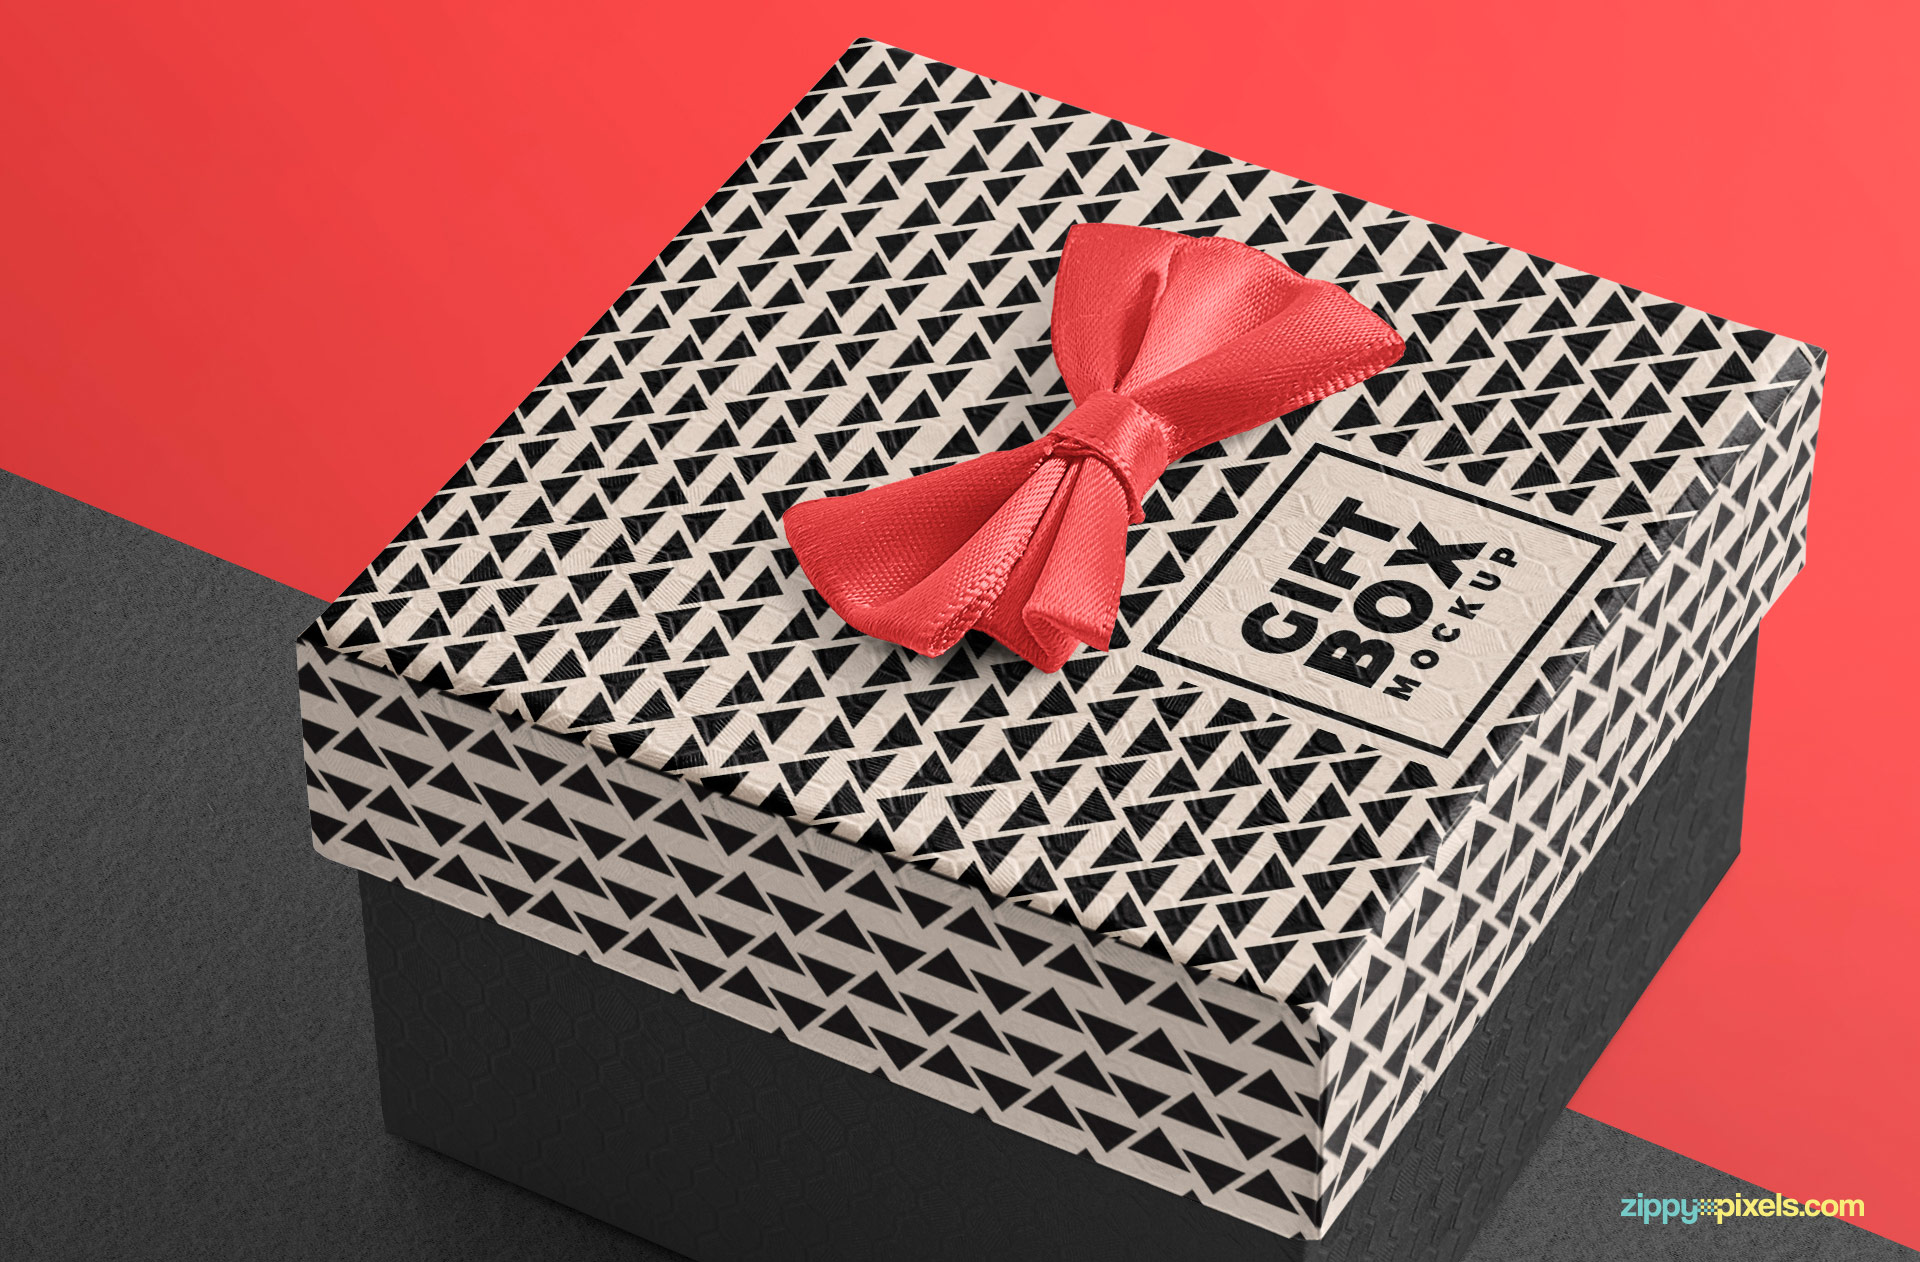 You can also remove this ribbon tie placed on box mockup PSD.